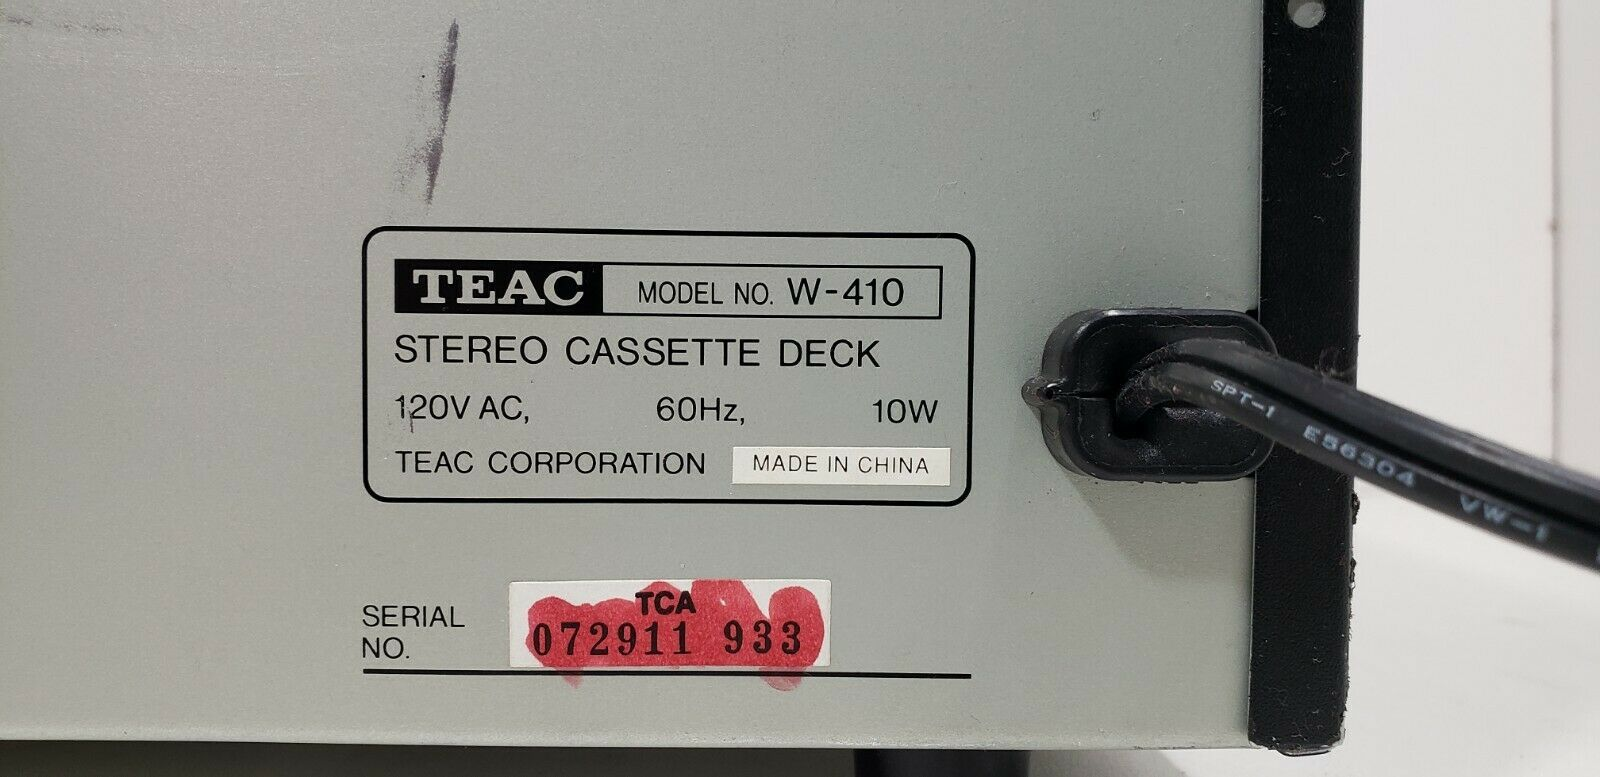 TEAC Stereo Double Cassette Deck W-410..Tested image 8